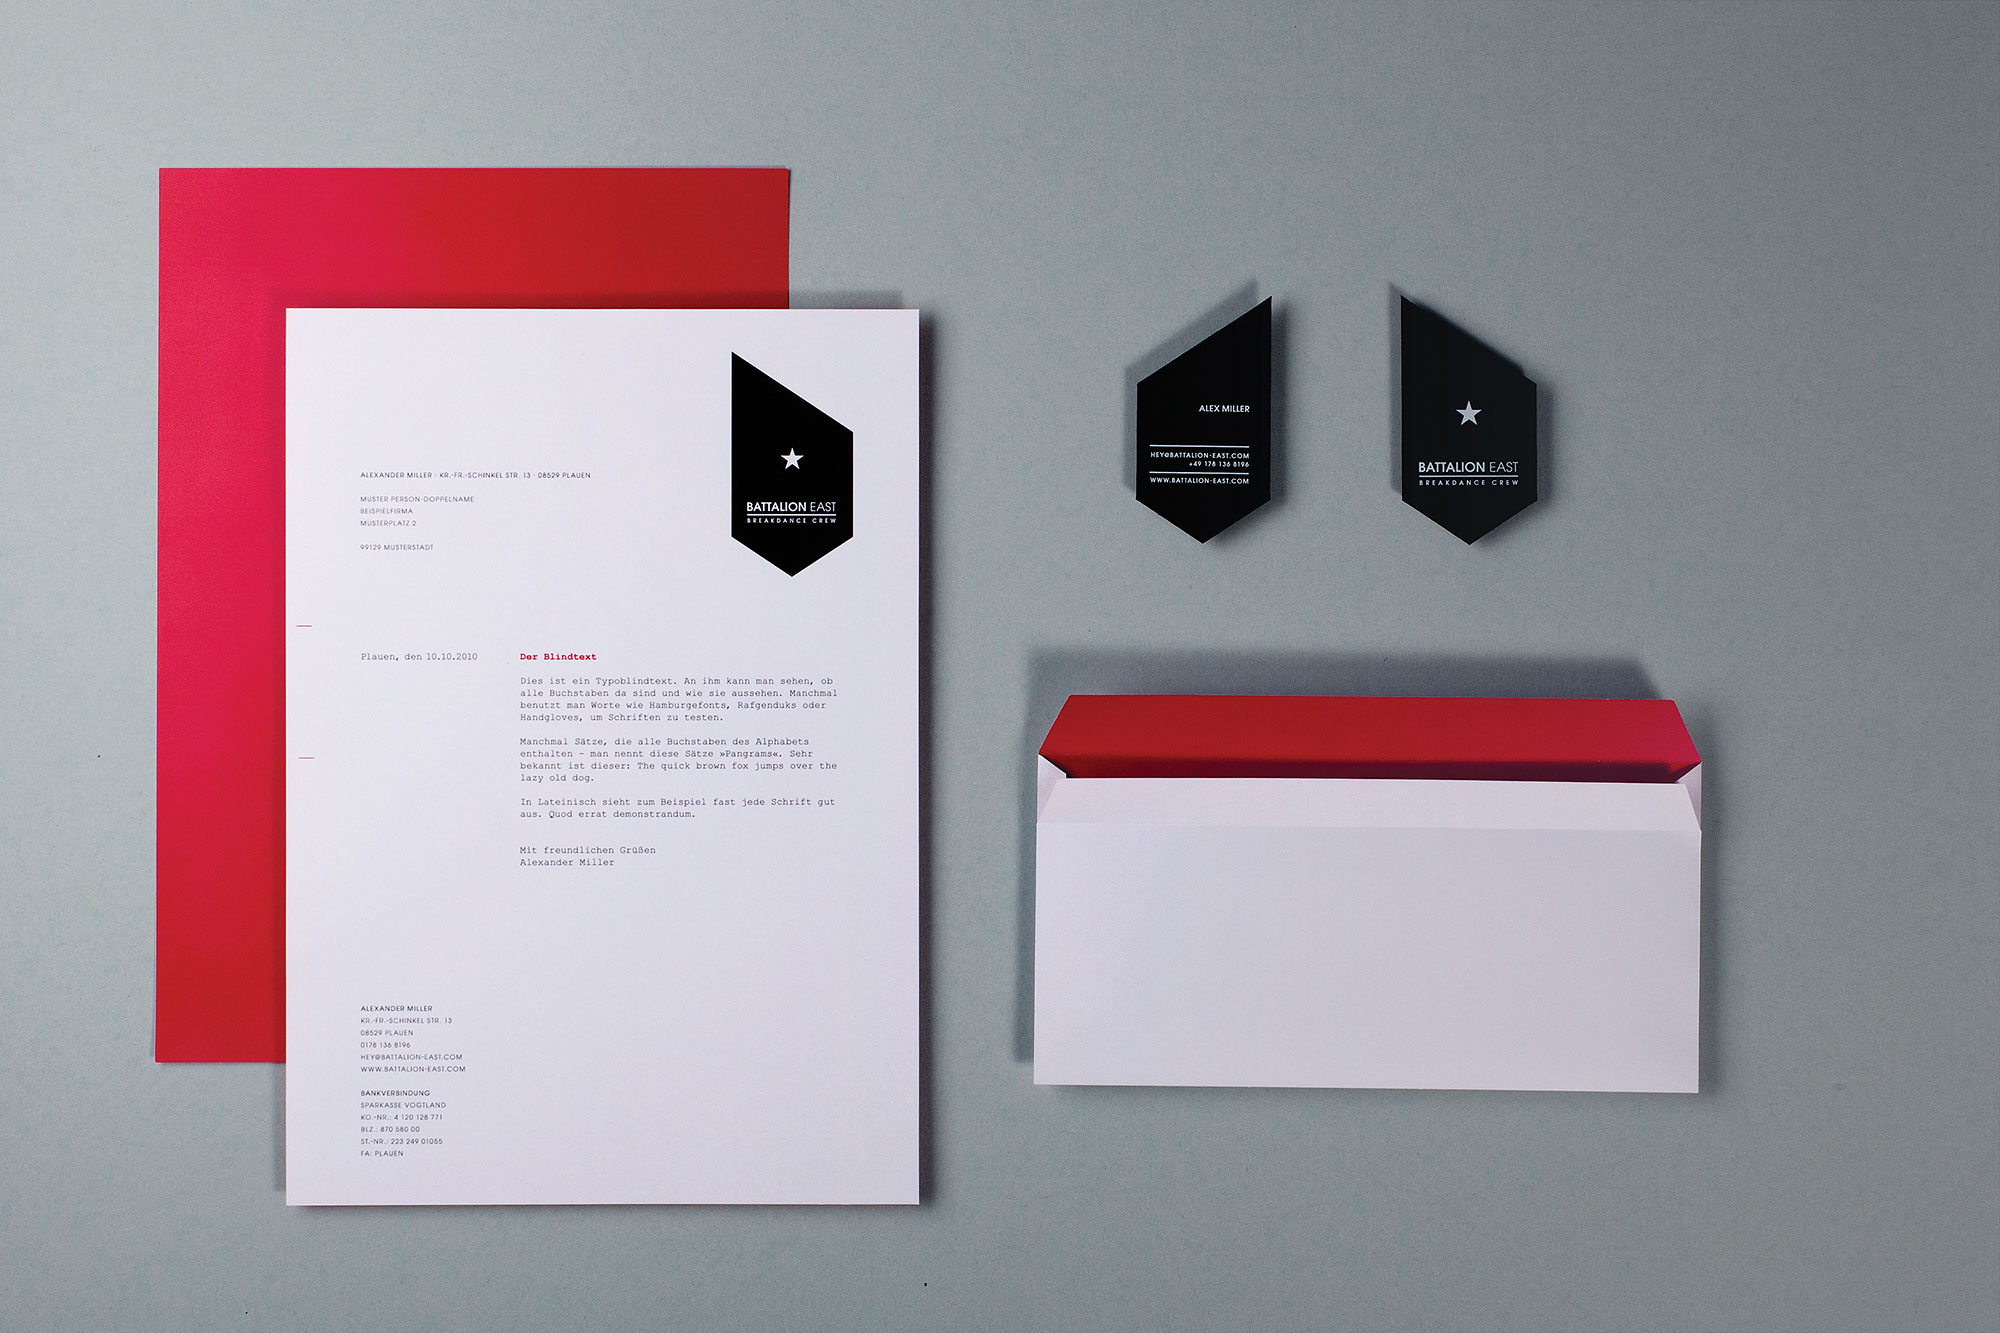 Battalion East Corporate Identity